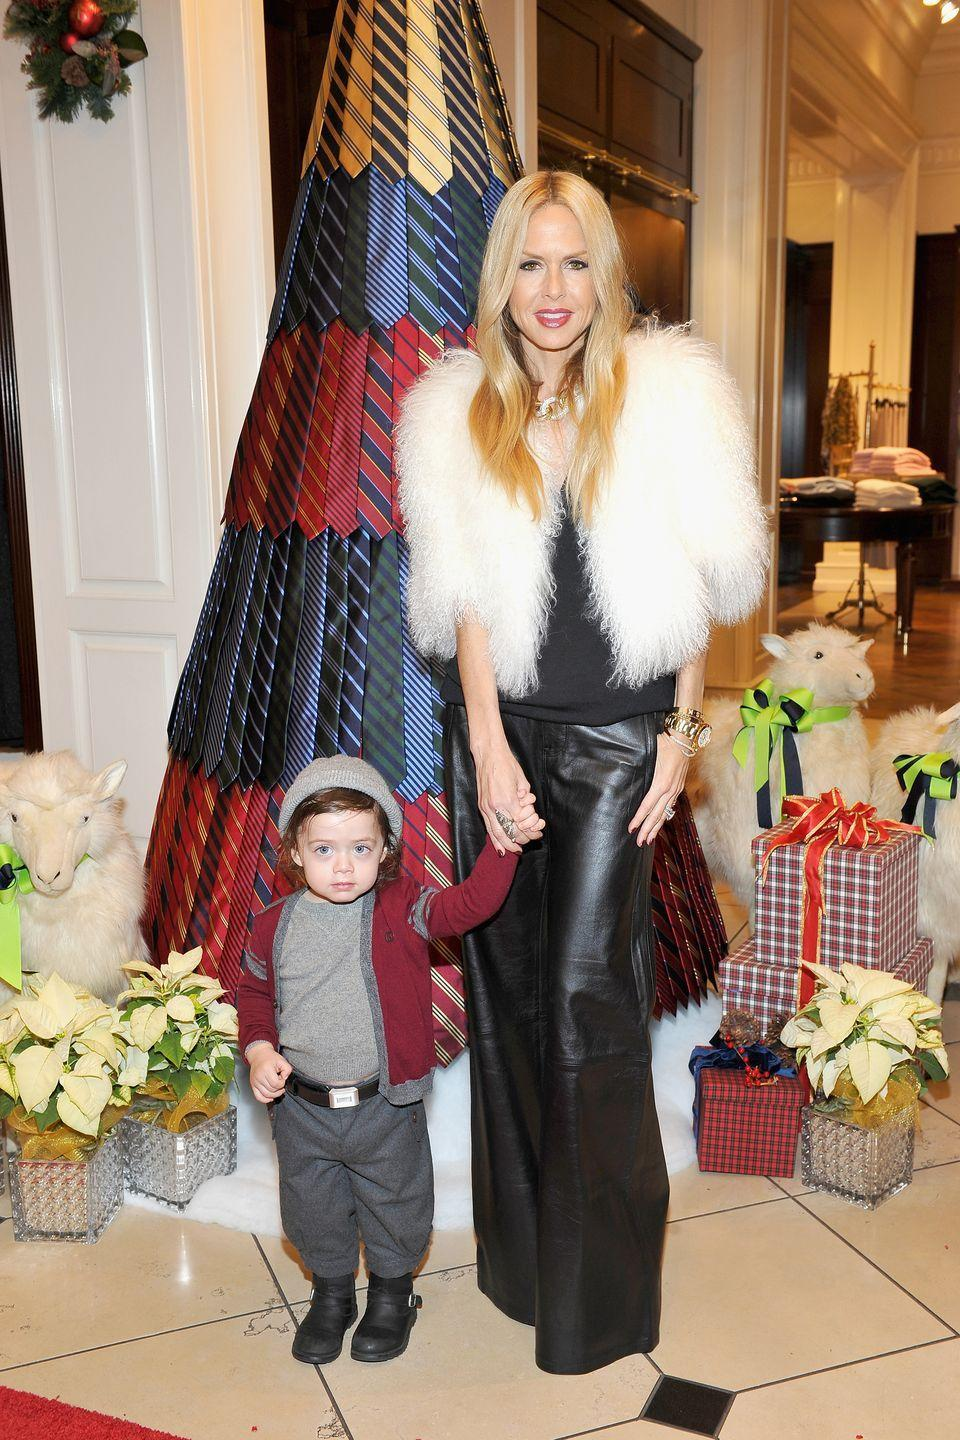 "<p>In 2013, Rachel Zoe was 42 years old when she announced that she and husband Rodger Berman were pregnant with their second child, Kaius. In a 2013 interview with <a href=""http://www.sheknows.com/parenting/articles/993087/rachel-zoe-on-skyler-having-more-kids-and-mom-fashion"" rel=""nofollow noopener"" target=""_blank"" data-ylk=""slk:She Knows"" class=""link rapid-noclick-resp""><em>She Knows</em></a>, Zoe revealed that her first son Skyler, who Zoe had when she was 39, was unplanned. </p><p>""It just happened,"" she said. ""It was the best thing that has ever happened to me and Rodger unquestionably, and we just stare at him and love him more every second of the day, if that is even possible."" </p><p>Before Kaius, Zoe explained that she was unsure if she would be able to get pregnant again. ""If we are lucky enough to have another one, we will have another one,"" she explained to <em>She Knows</em>. ""I think we are so blessed with Sky and [if] that is all we are supposed to have, then that is OK too.""</p>"